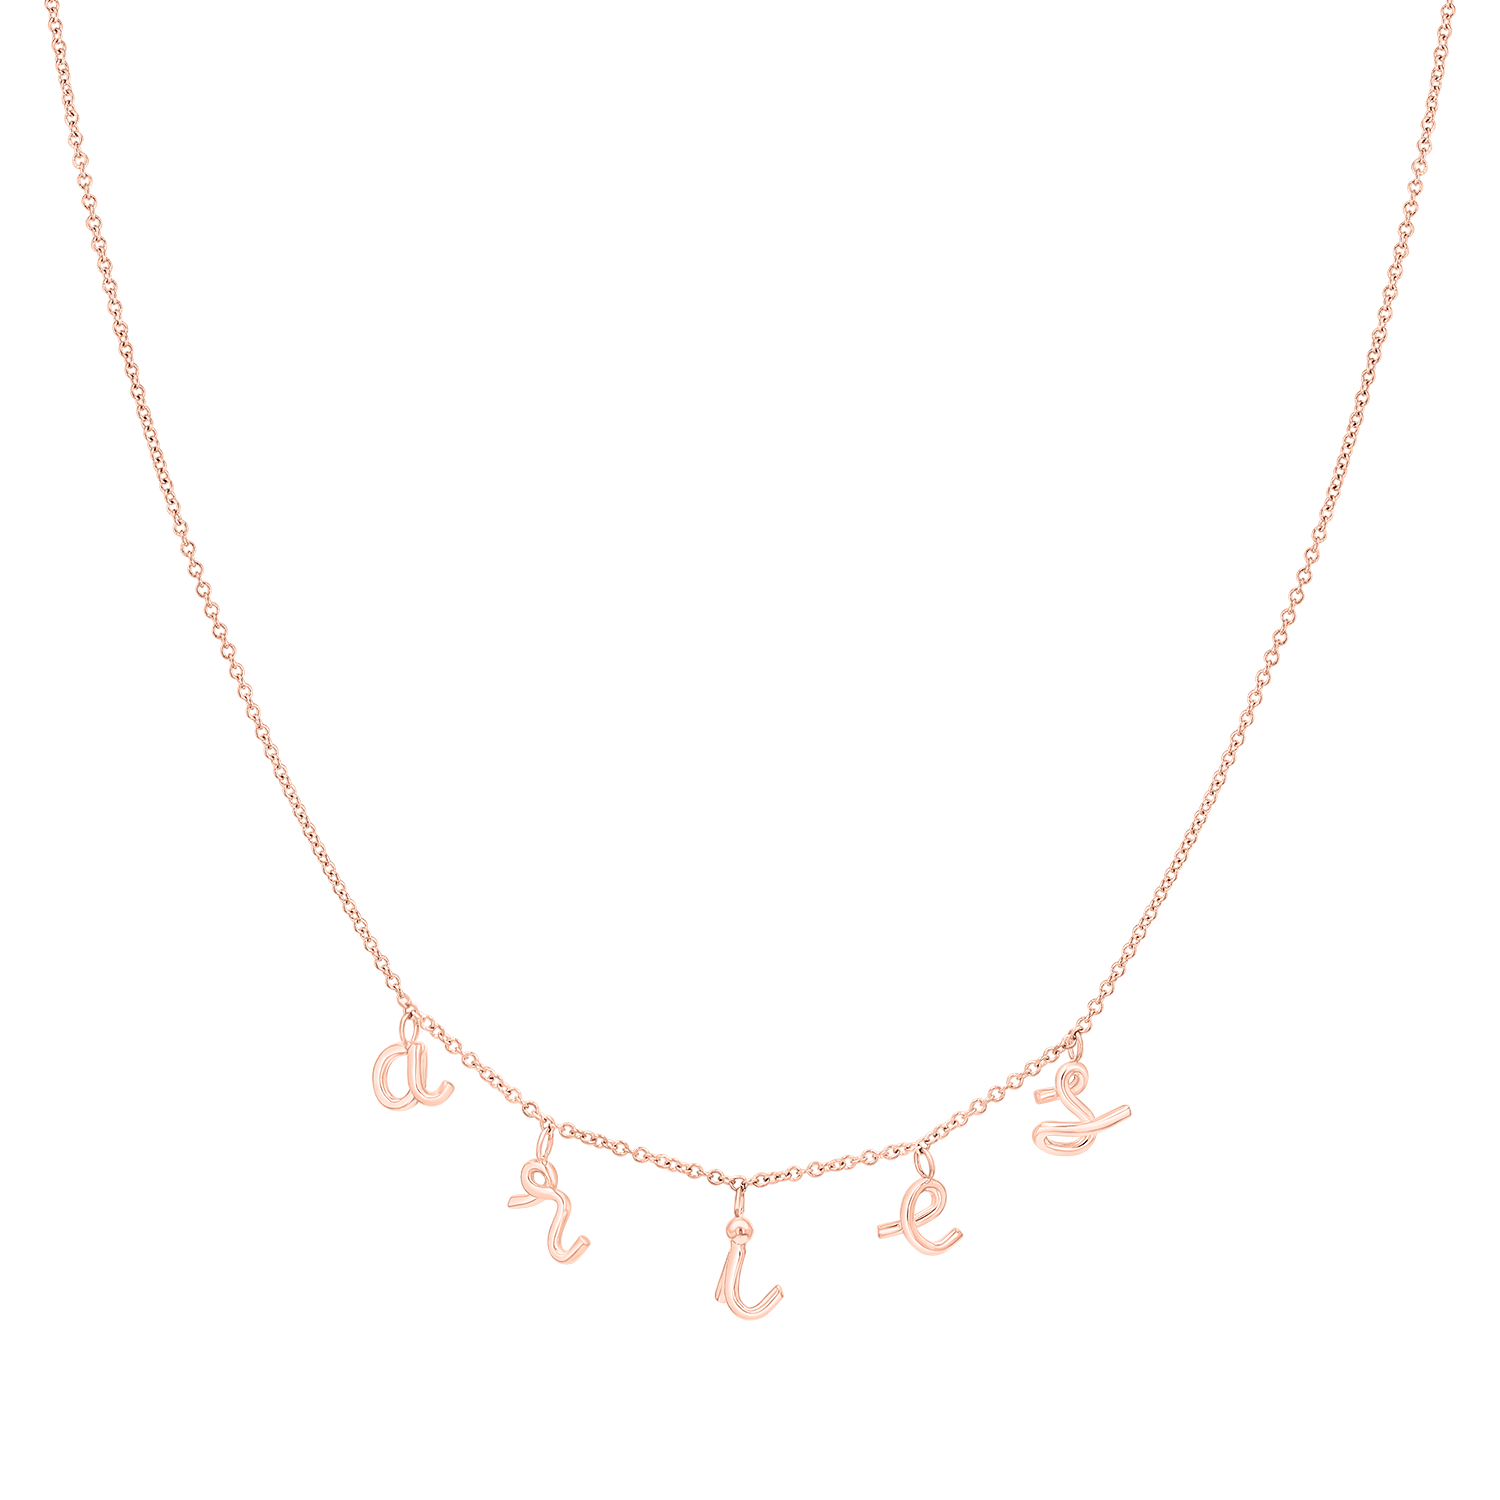 Custom Mini Letter Necklace